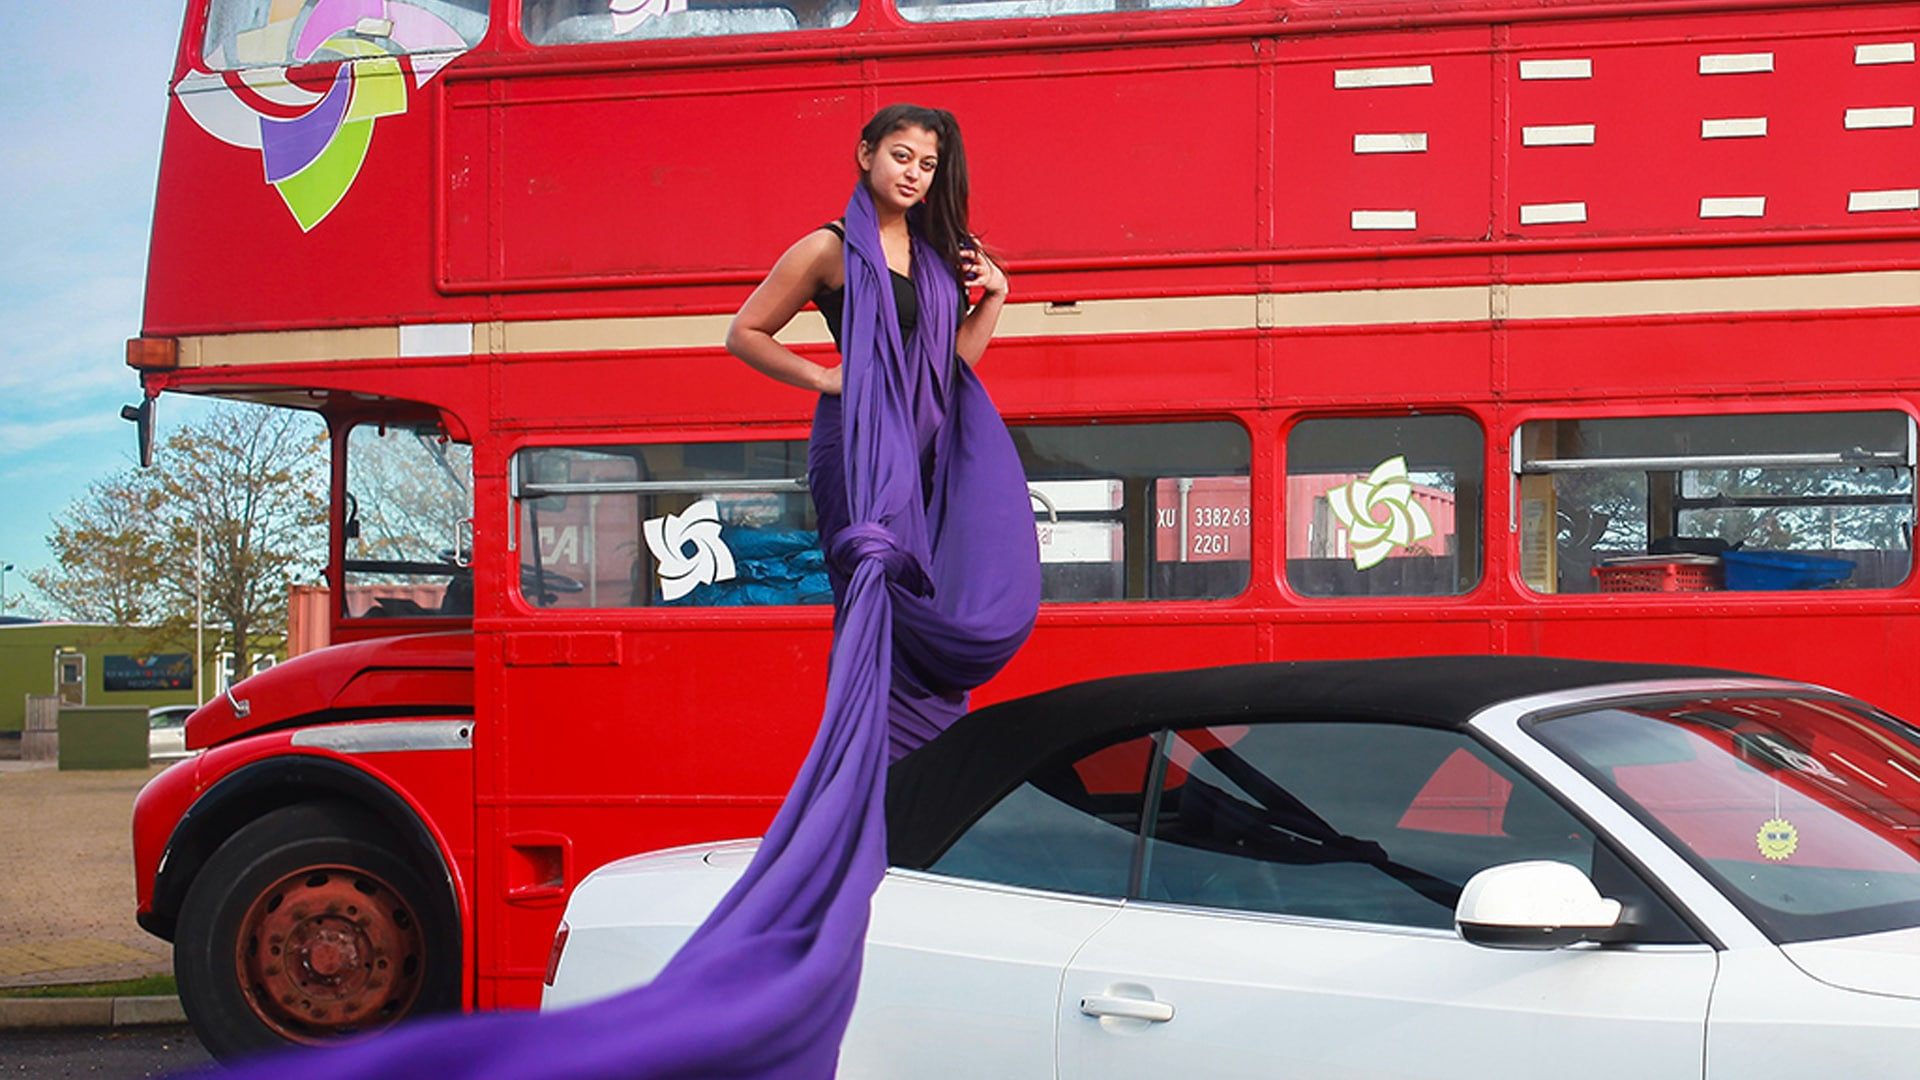 A person wearing a purple dress with a lush long purple train from their neck stood on the back of a white soft top convertible car in front of a classic red double decker bus